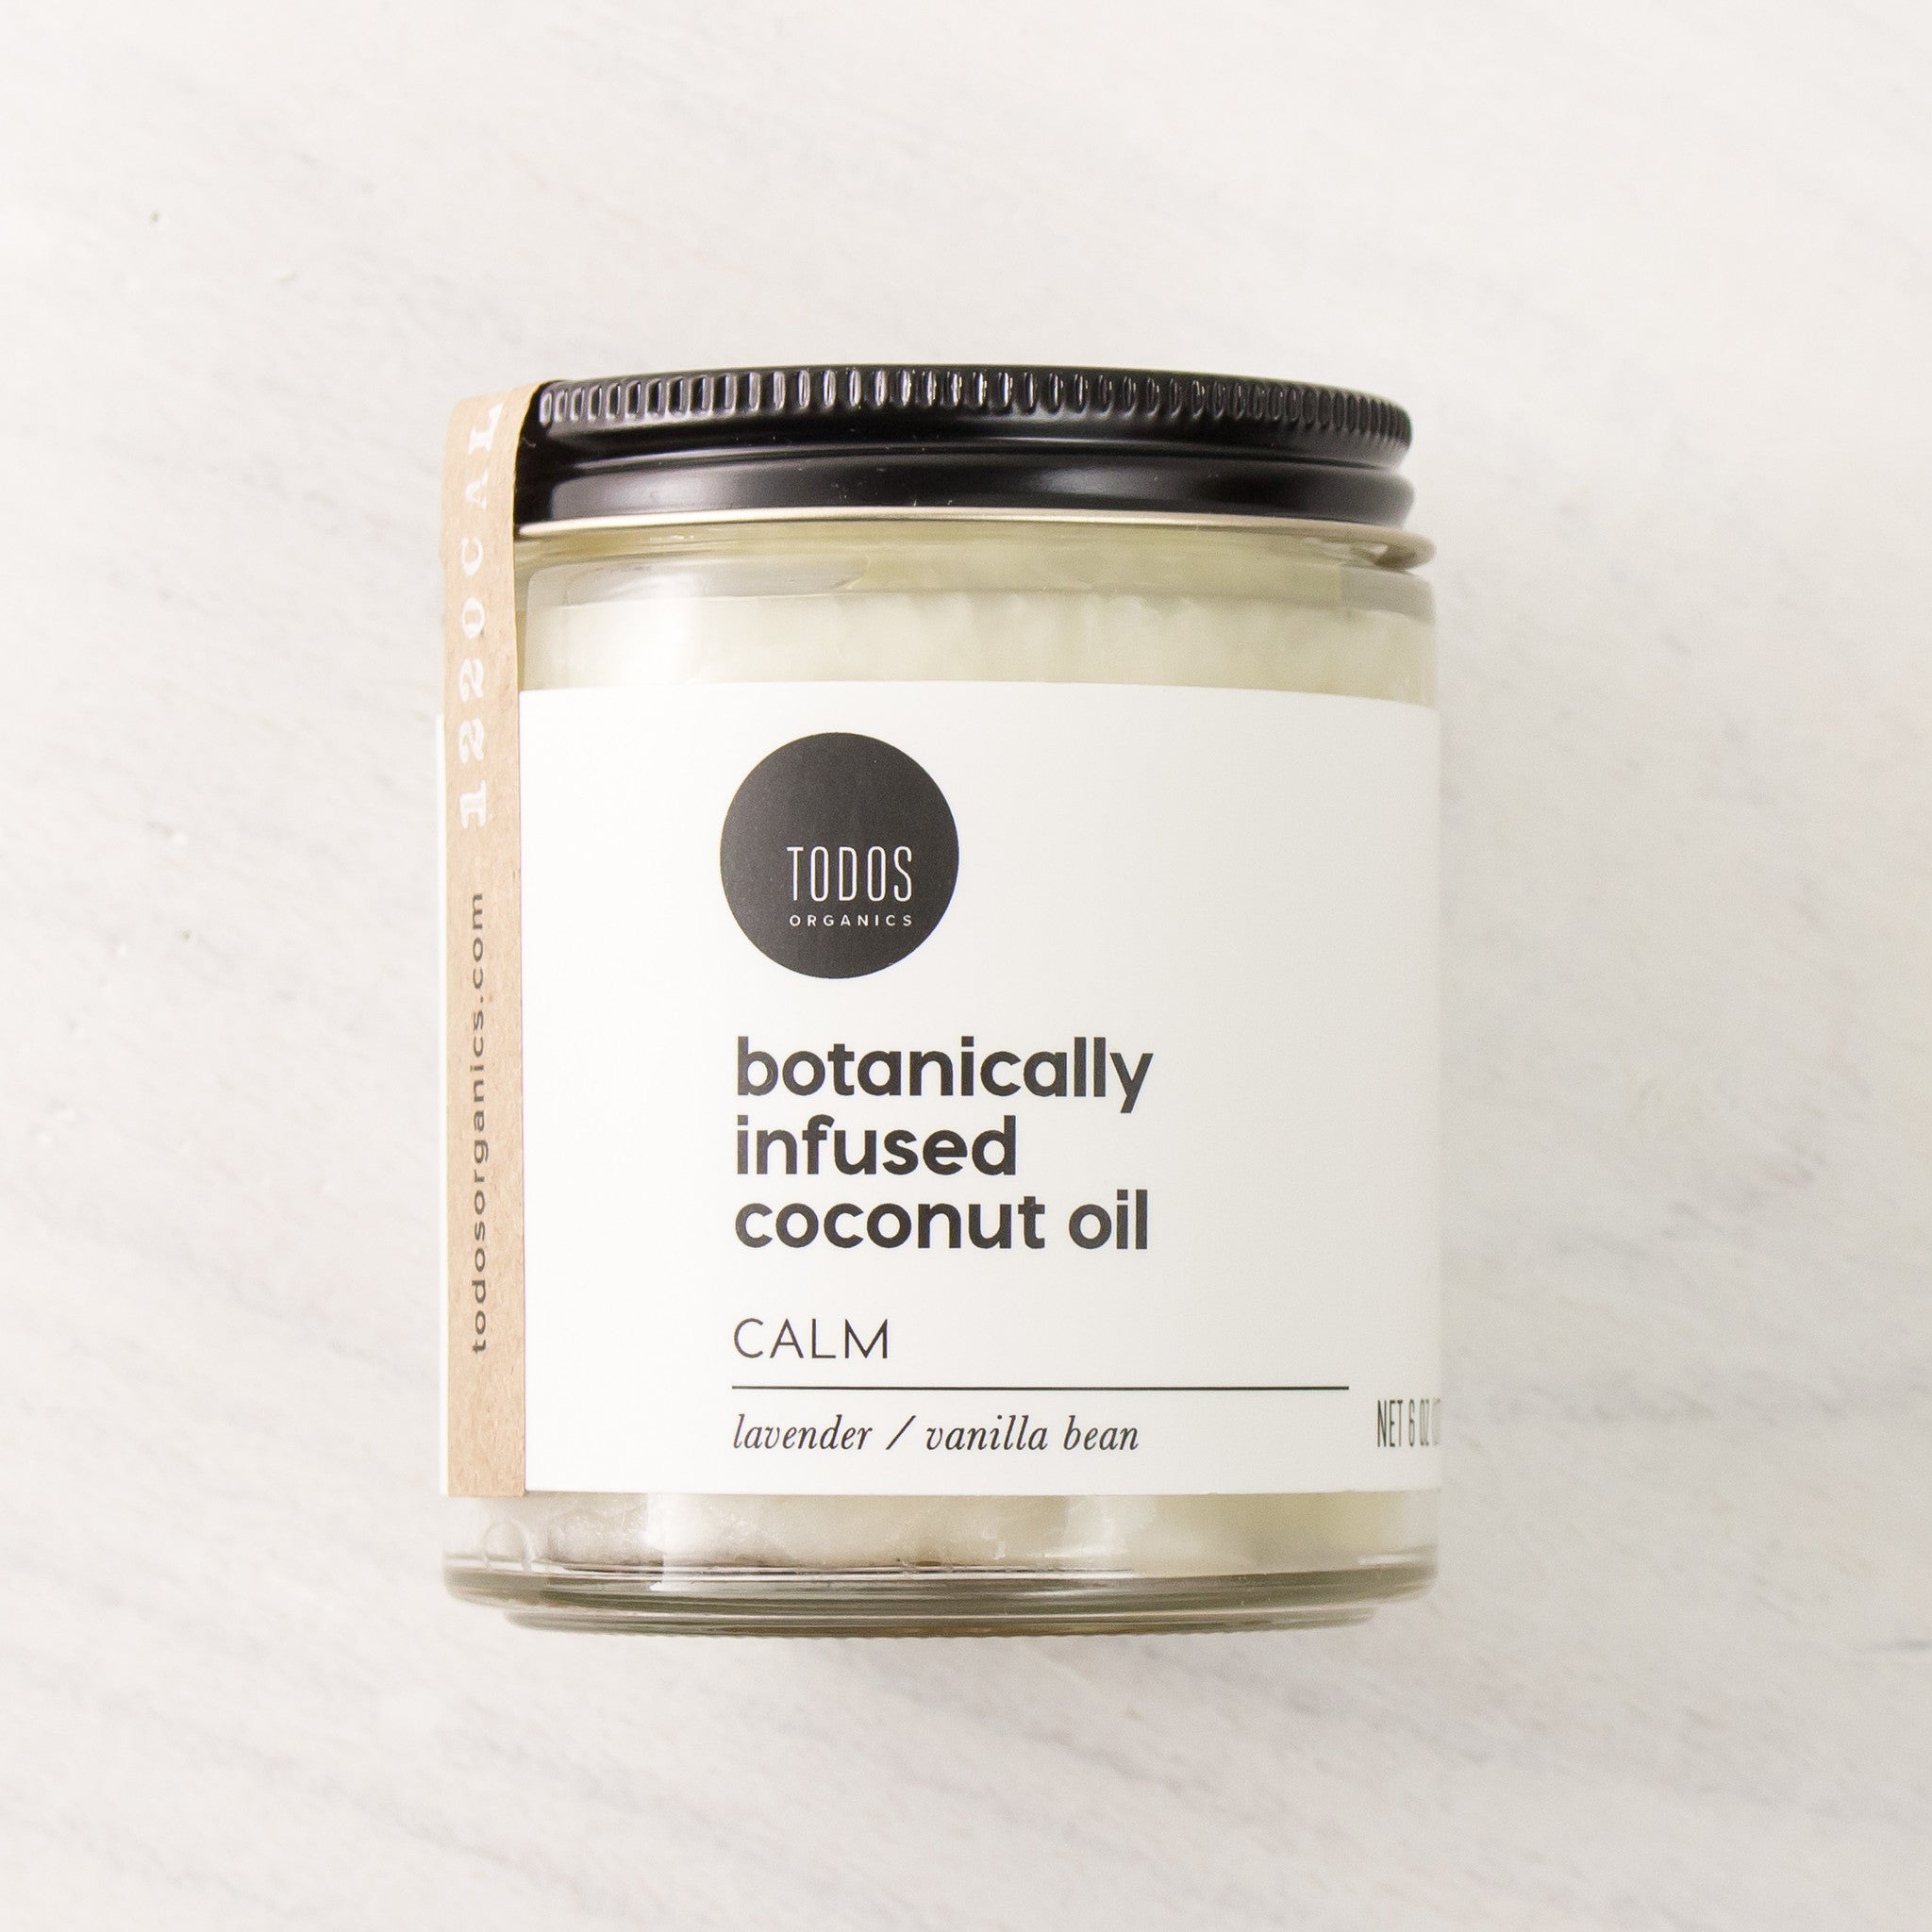 CALM Organic Herbal Infused Coconut Oil